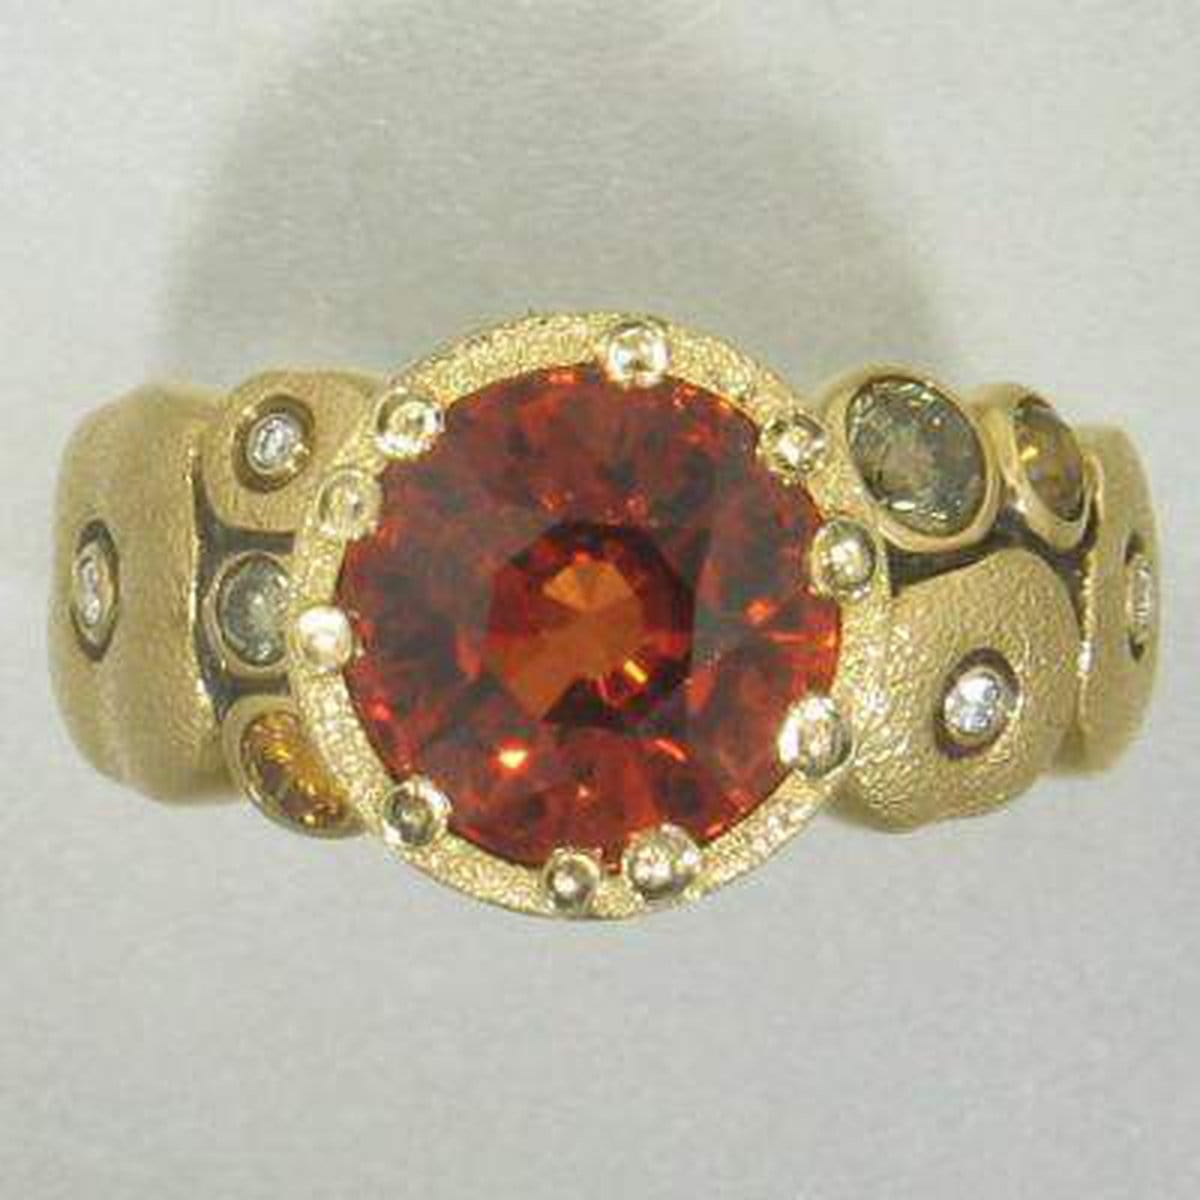 18K Orchard Mandarin Garnet & Diamond Ring - R-129DC-Alex Sepkus-Renee Taylor Gallery